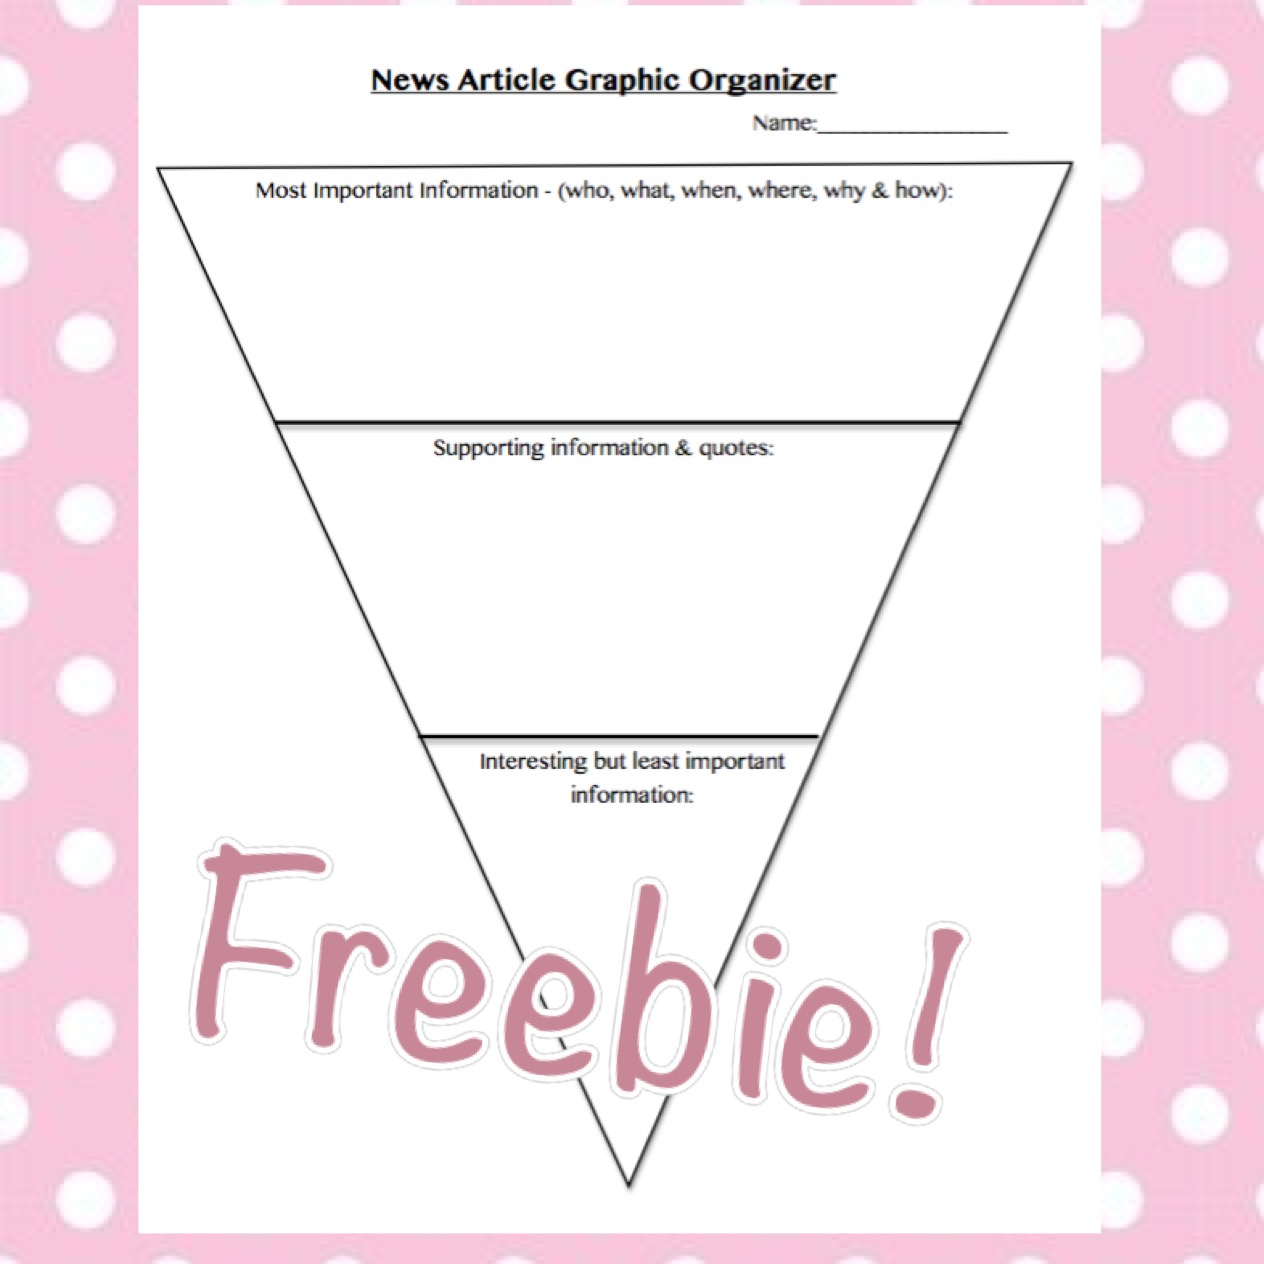 This news article graphic organizer is great for students to map their thoughts and plan their writing.